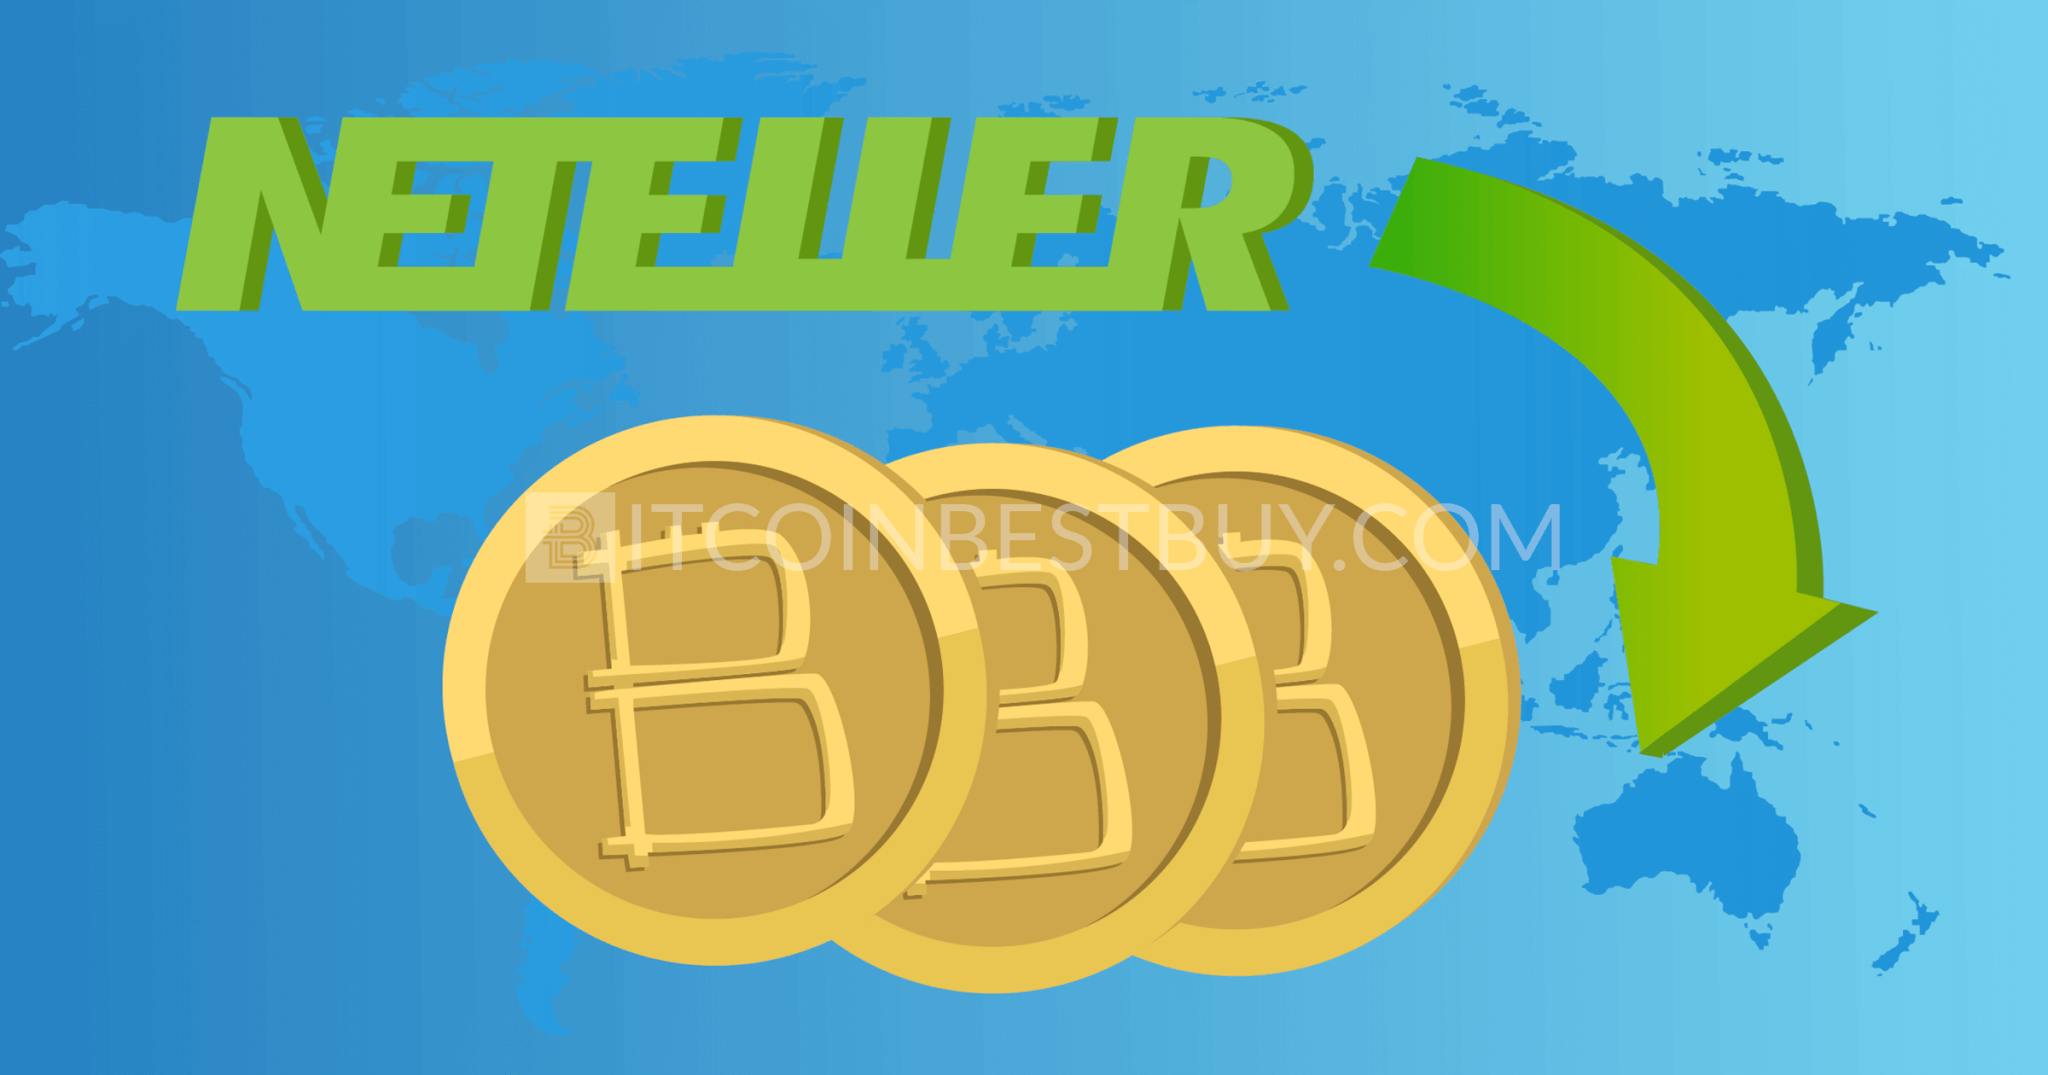 How to buy bitcoin using neteller list of the best exchanges it is thus important to use a payment way that would get you btc cheaply instantly and safely out of many options neteller comes as one of the most ccuart